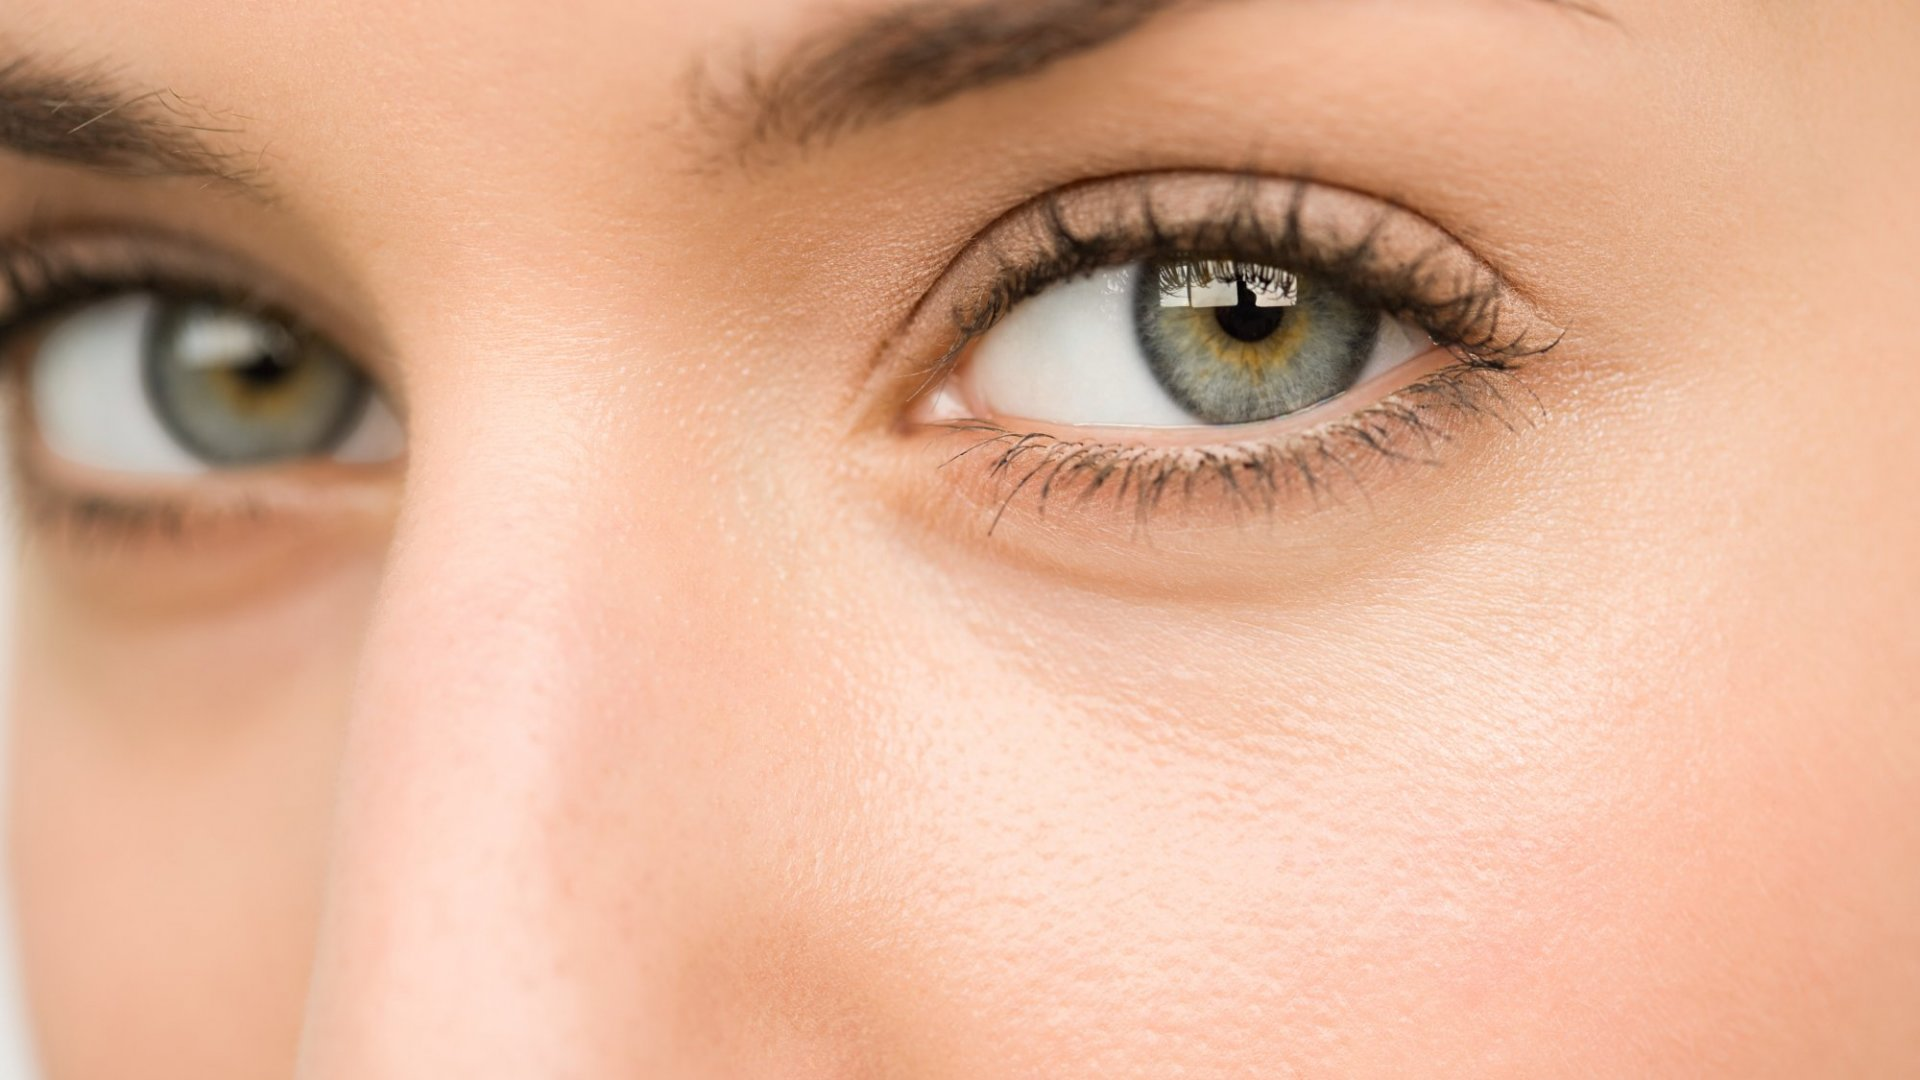 What a Lack of Eye Contact Says About You, According to Science (and How to Fix It)